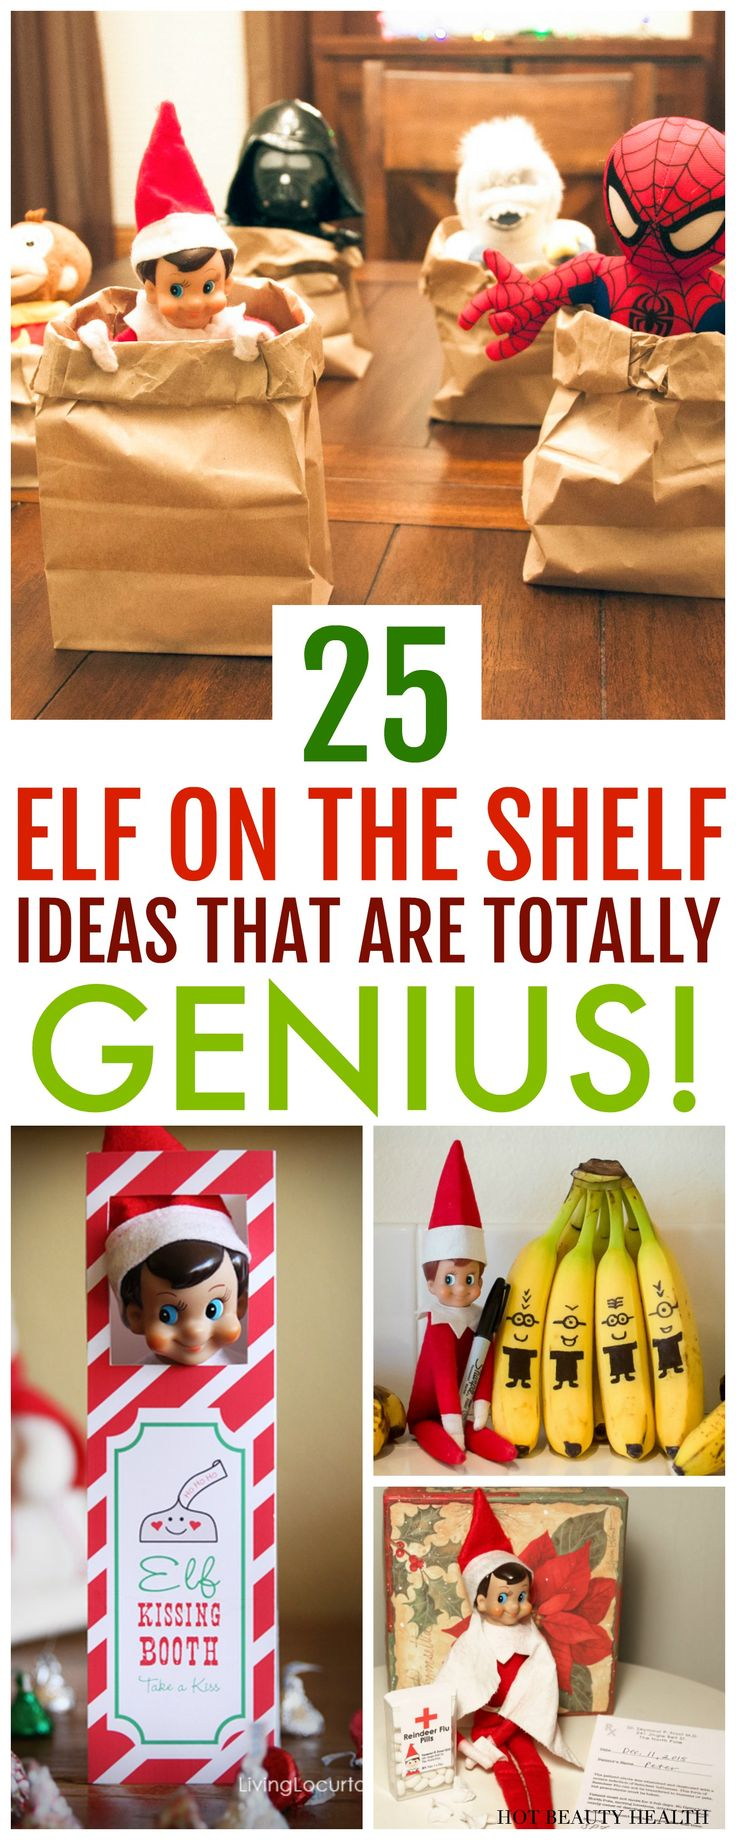 25 Funny Elf On The Shelf Ideas That Are Totally Genius. With this list, your kids will love all the mischief your elf will be doing this holiday season. Tons of easy ideas that will last up to Christmas Eve. Click pin for ideas! Hot Beauty Health #elfontheshelf #elfontheshelfideas